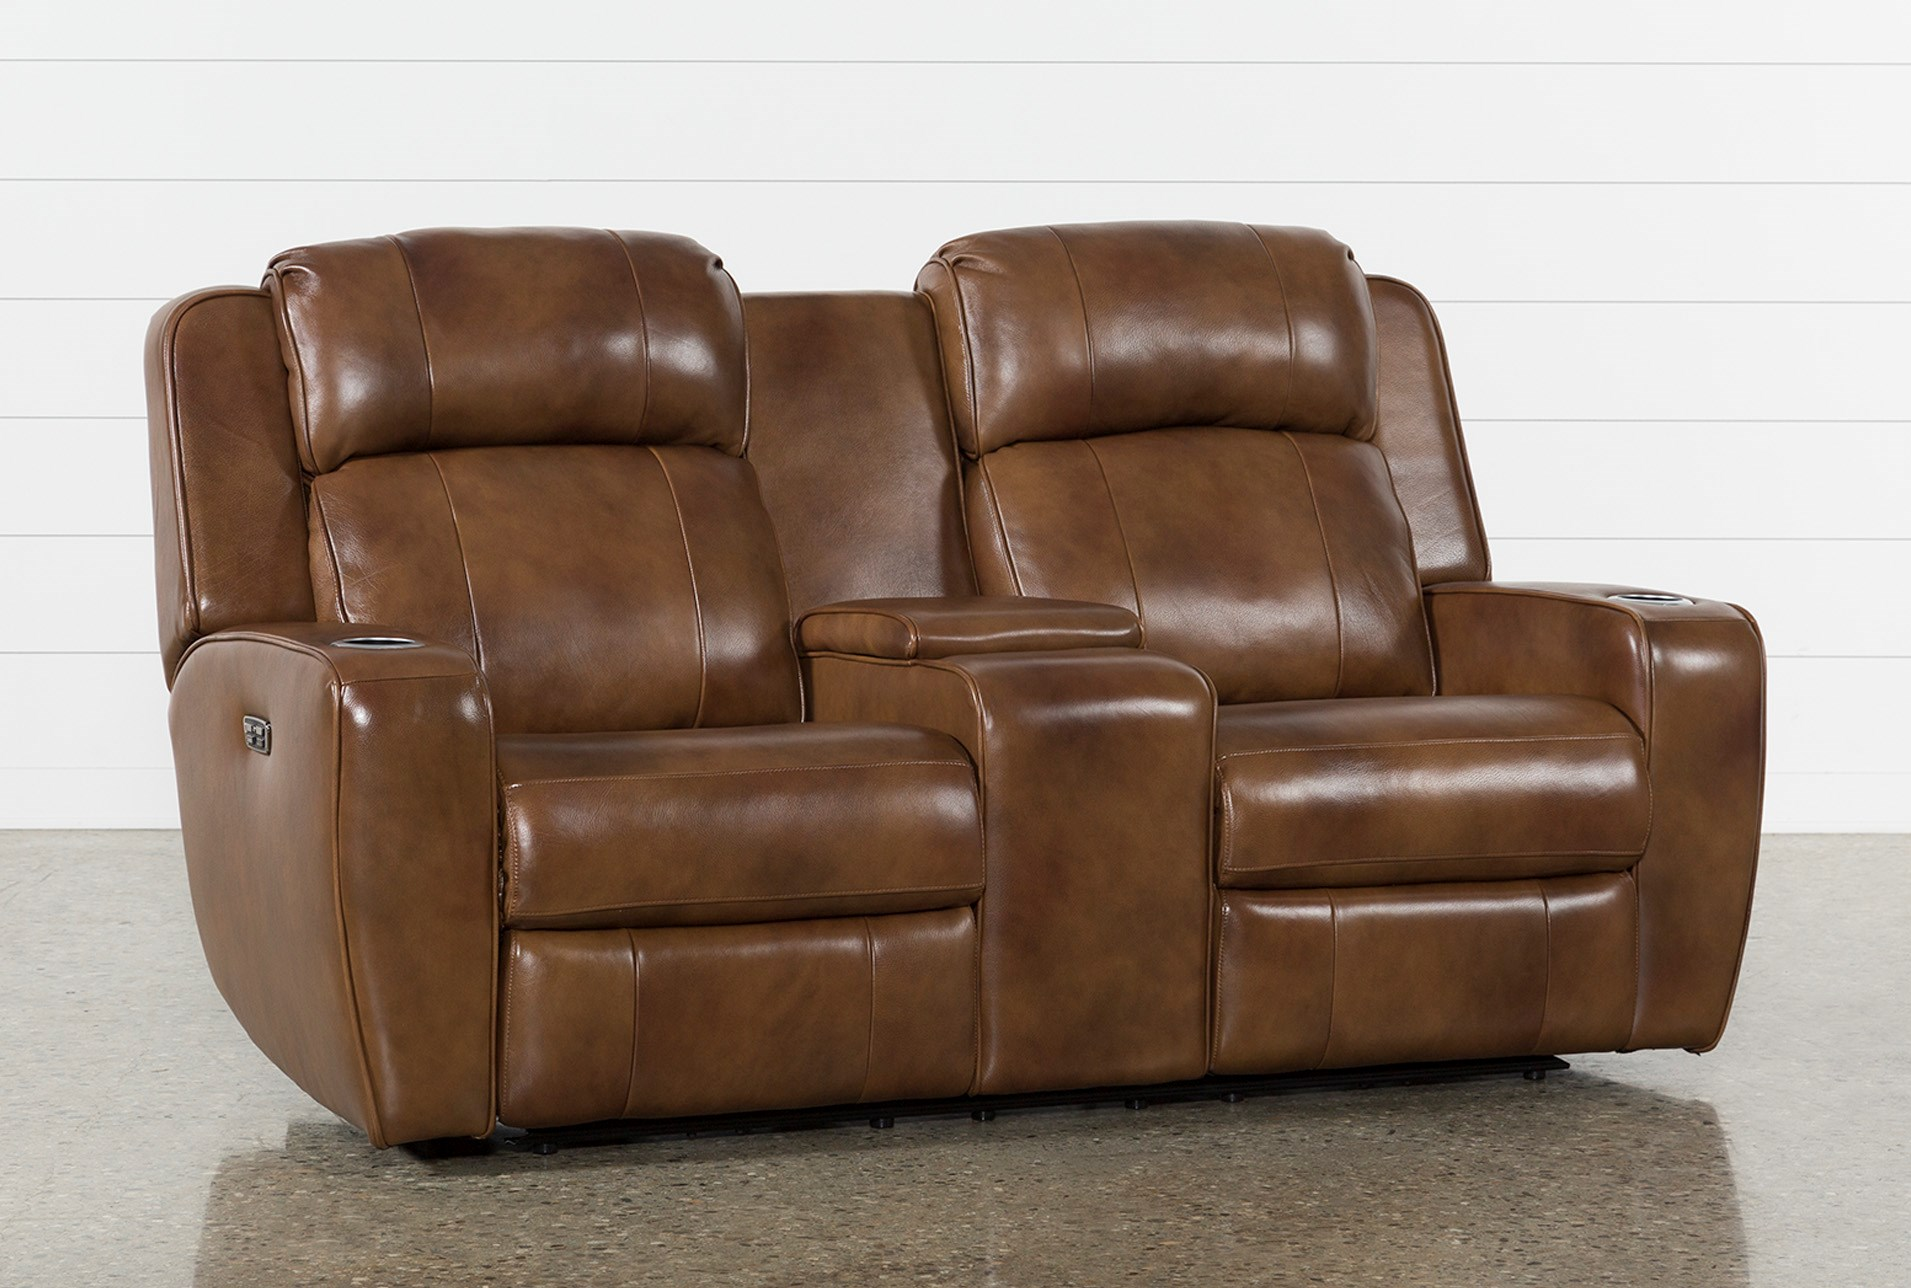 Phelps Leather Reclining Console Loveseat W Headrest Usb Qty 1 Has Been Successfully Added To Your Cart